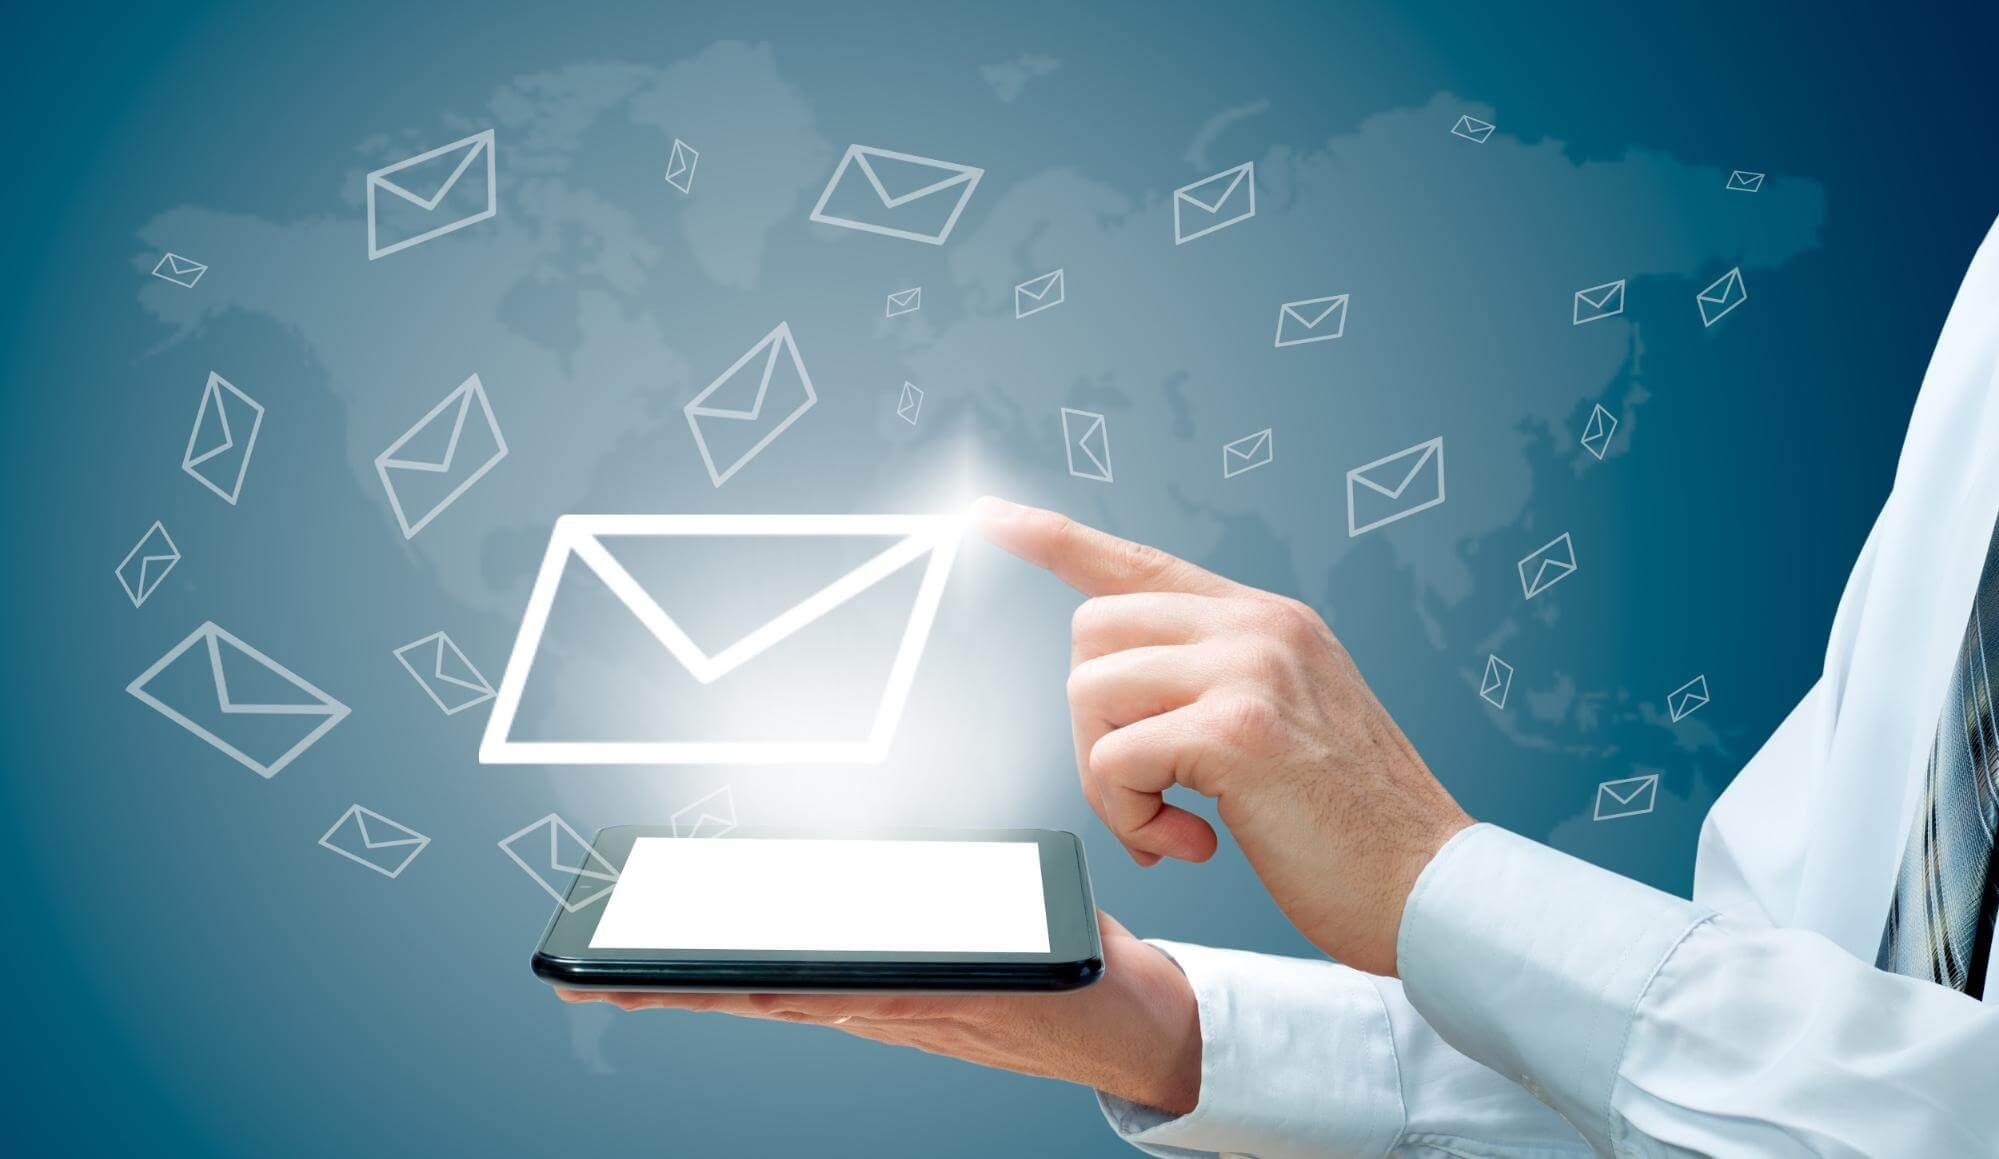 ferramenta-de-email-marketing-dica